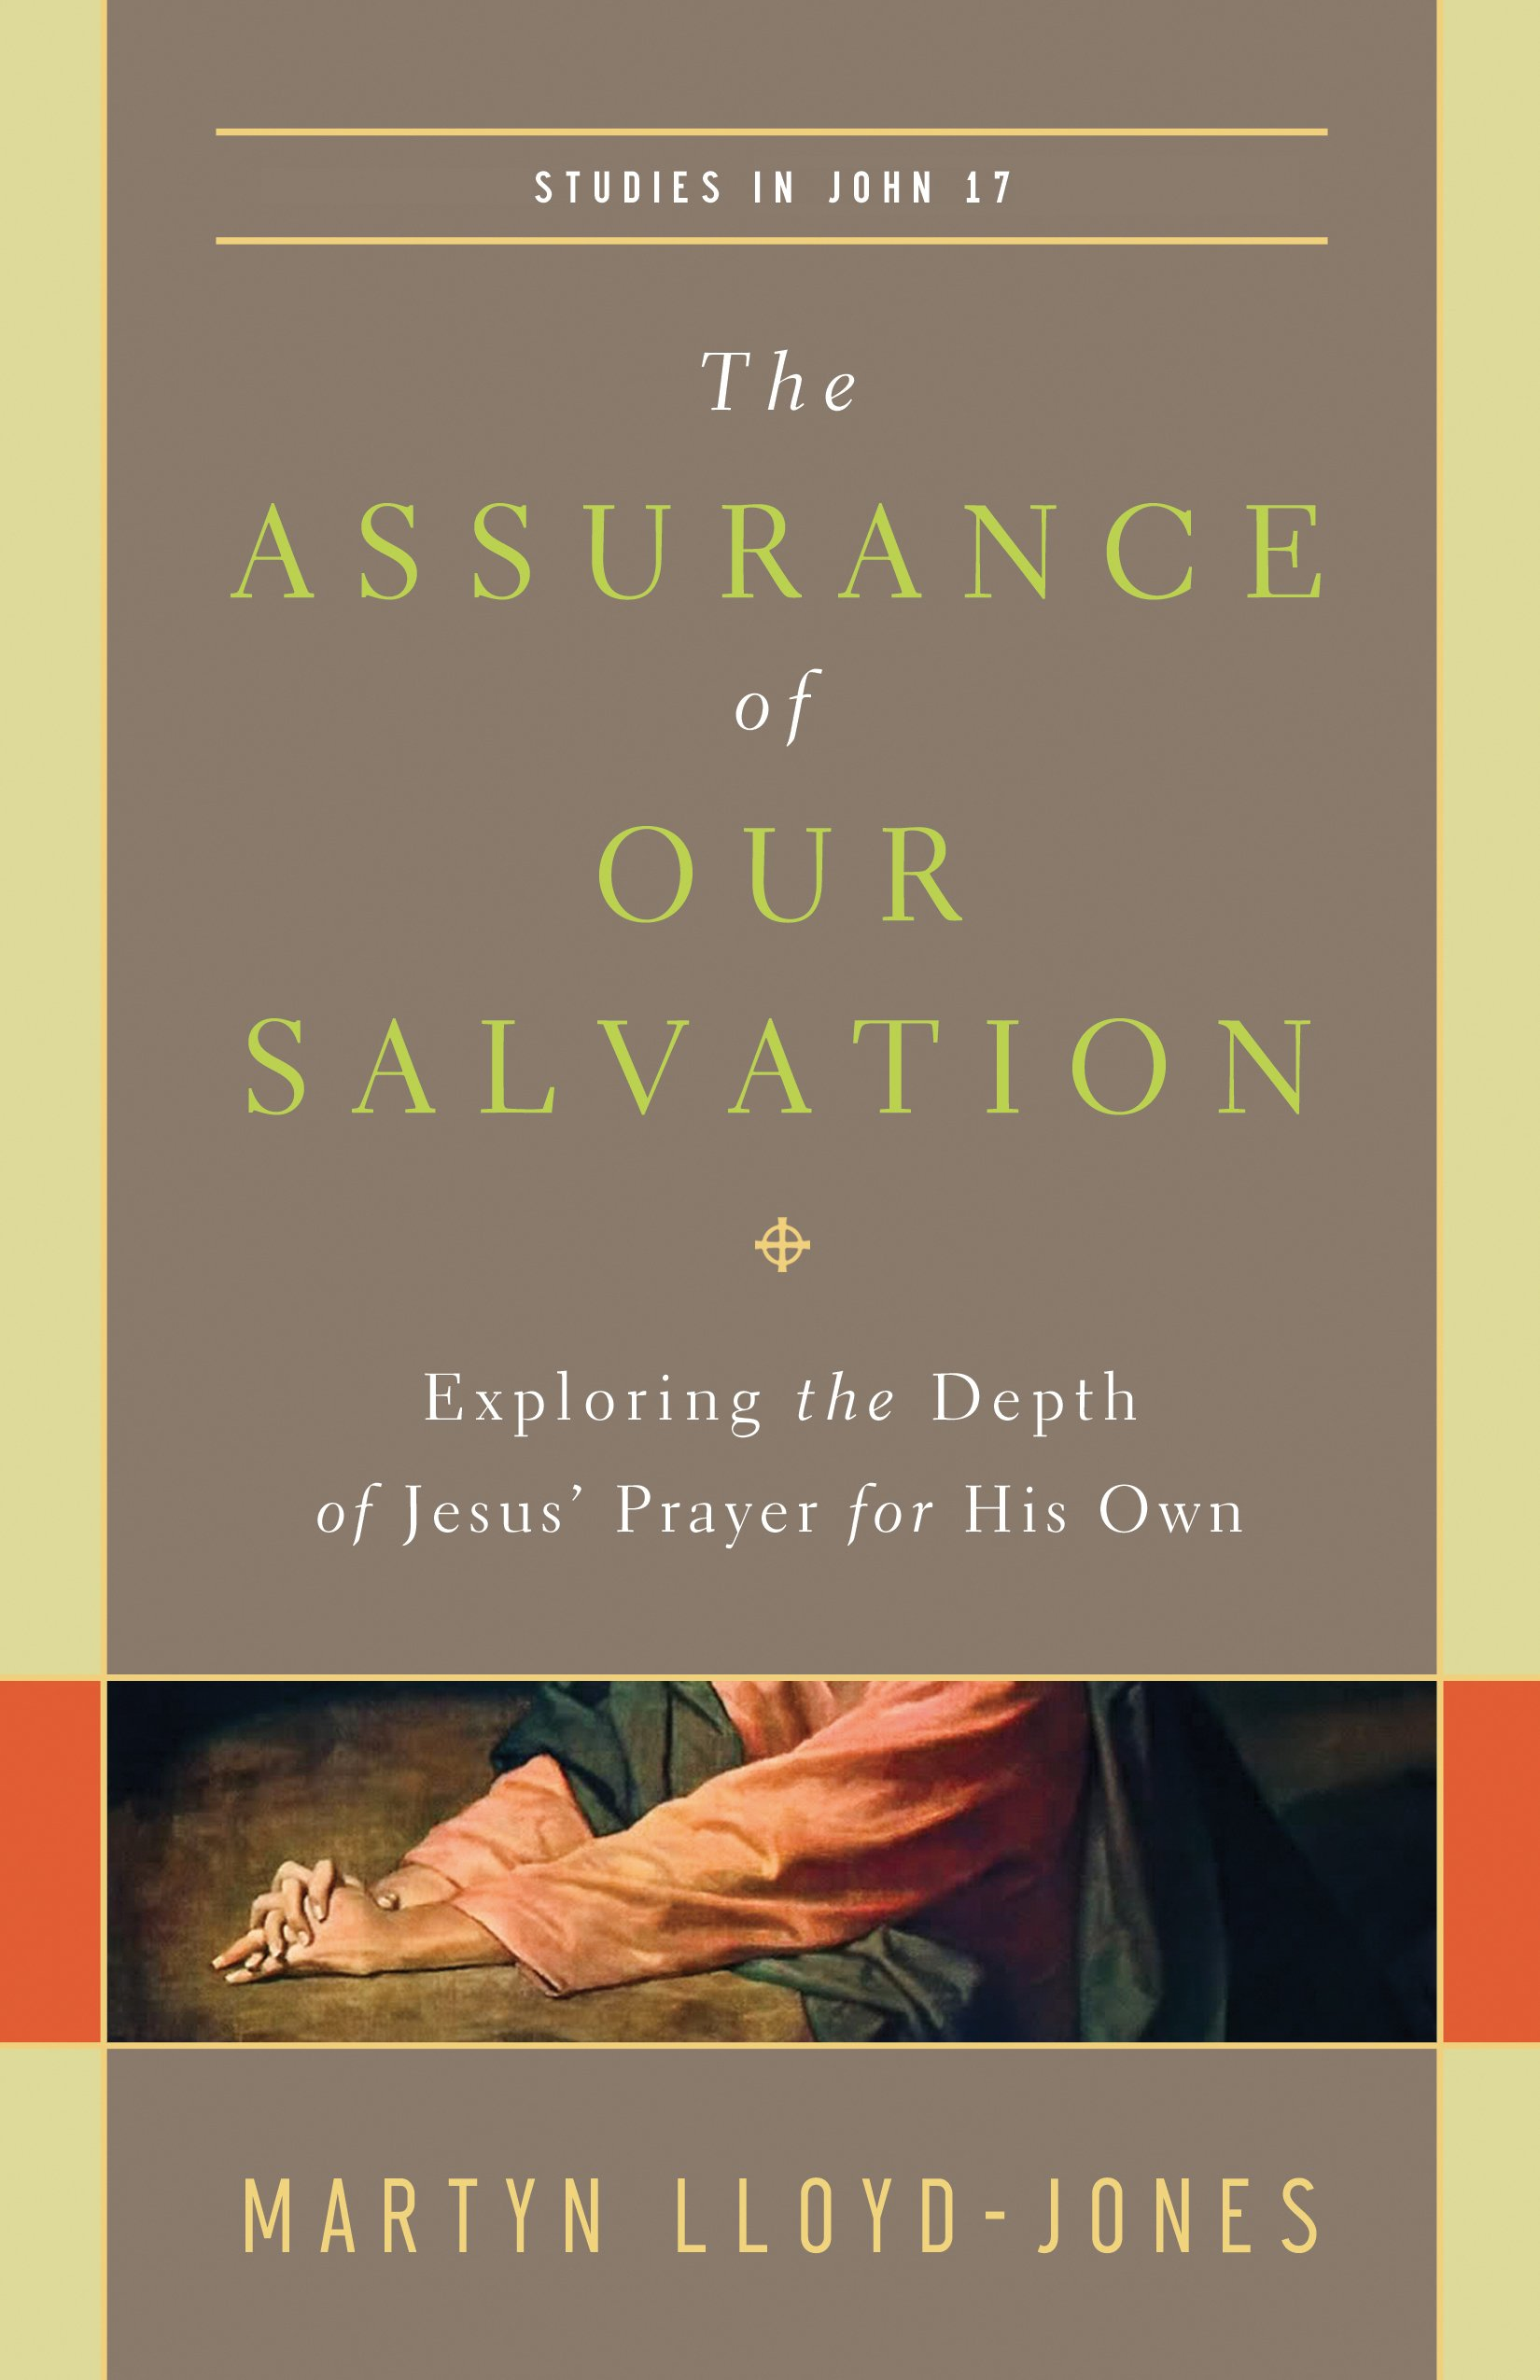 The assurance of our salvation studies in john 17 exploring the the assurance of our salvation studies in john 17 exploring the depth of jesus prayer for his own martyn lloyd jones 9781433540516 amazon books fandeluxe Image collections